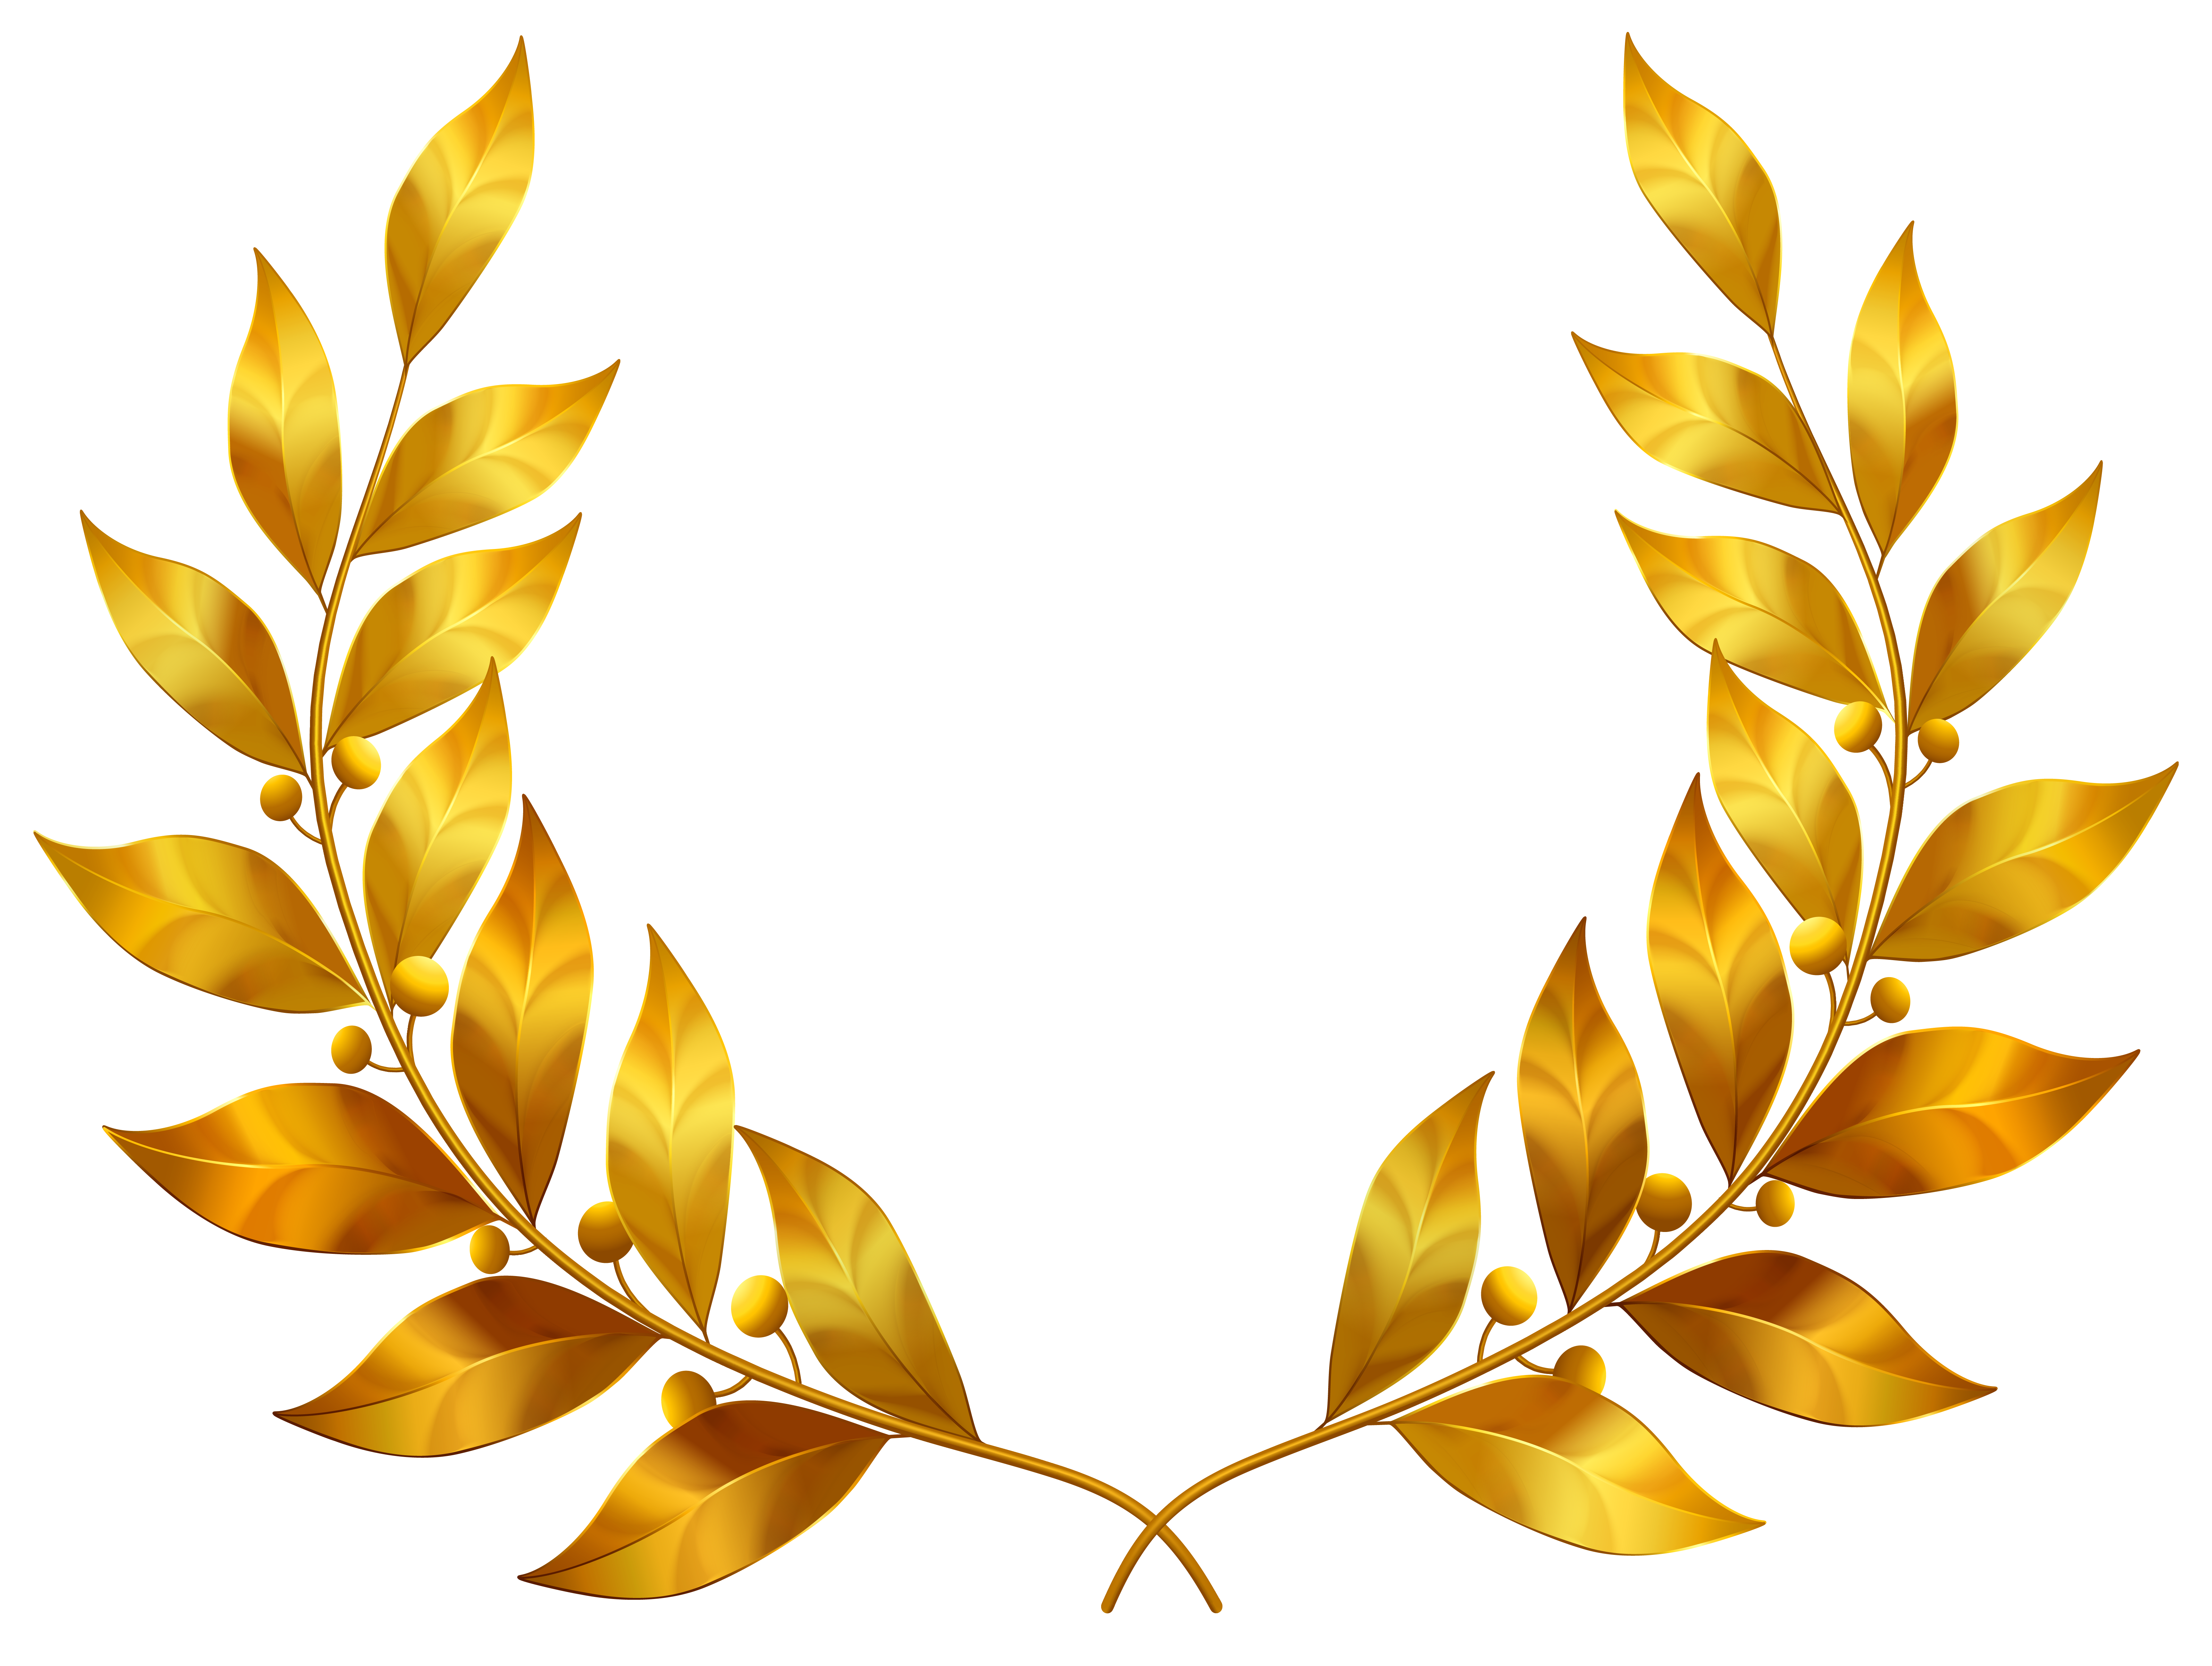 Greek clipart wreath. Laurel leaves png image